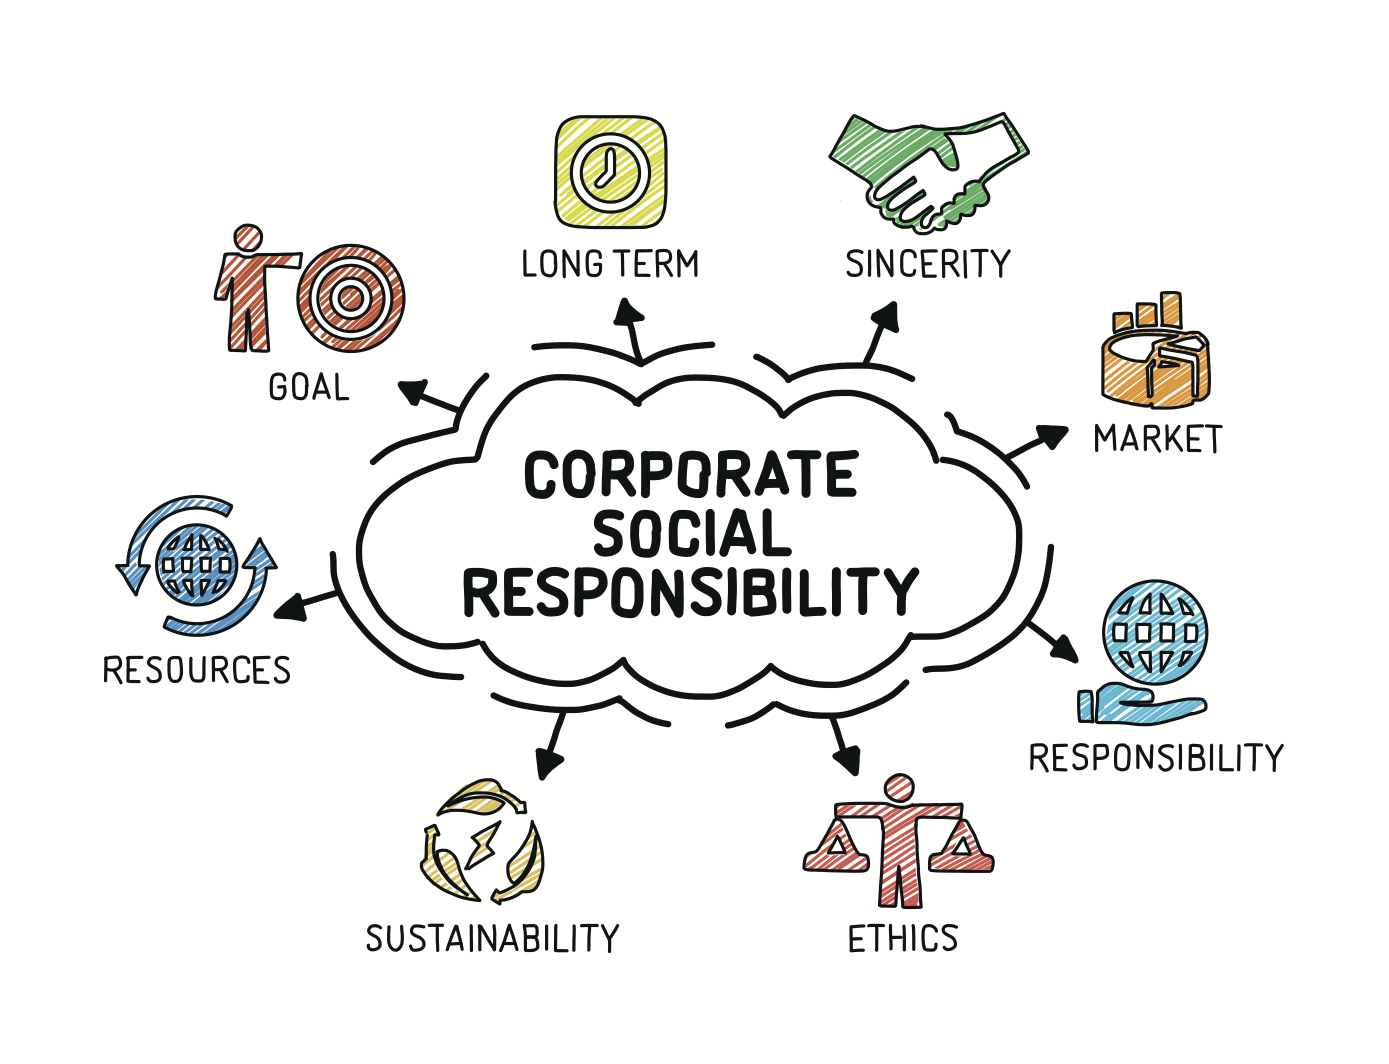 corporate social responsibility an investigation into A case study of corporate social responsibility by malaysian government link company_电子/电路  further investigation by us found the reason is because of the.